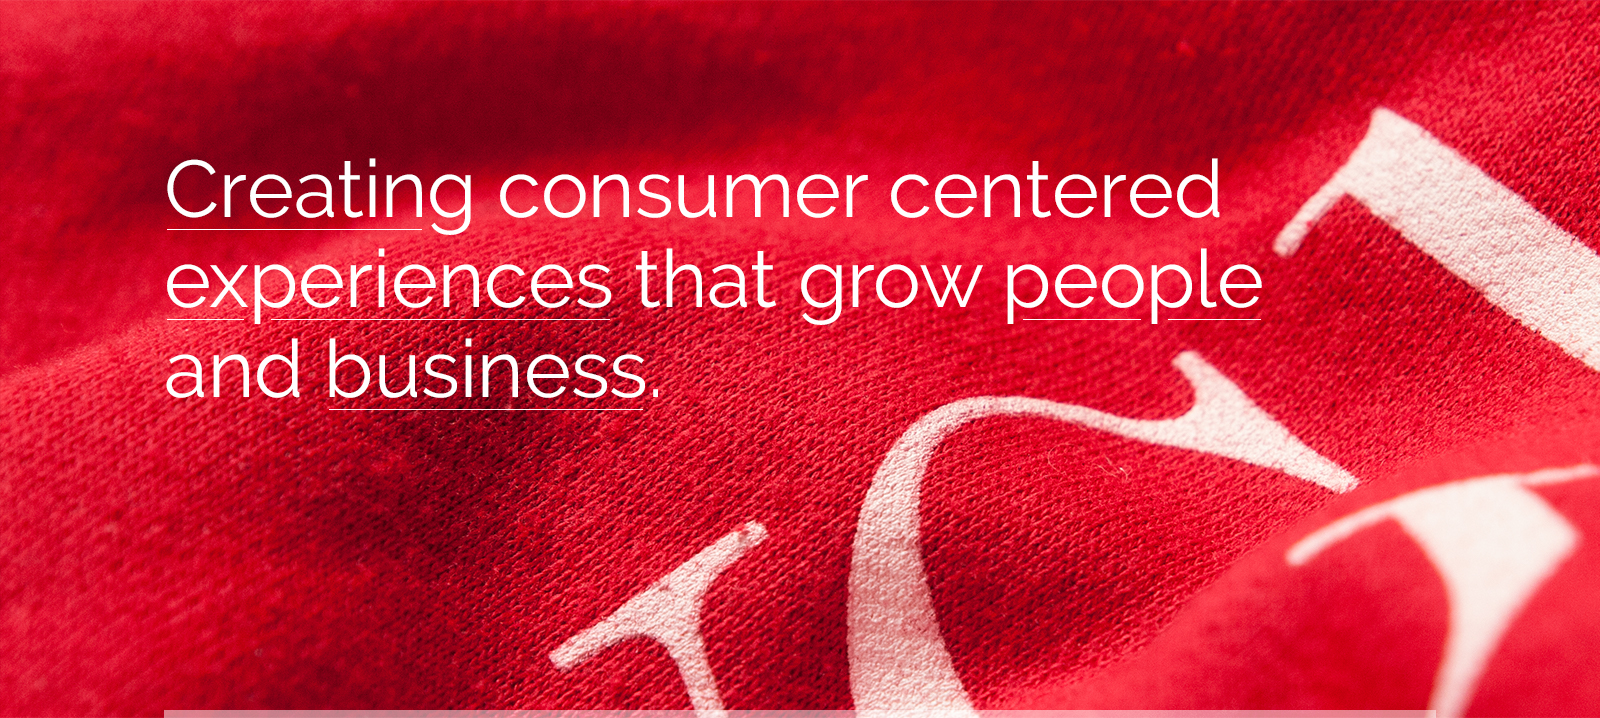 Creating consumer centered experiences that grow people and business.